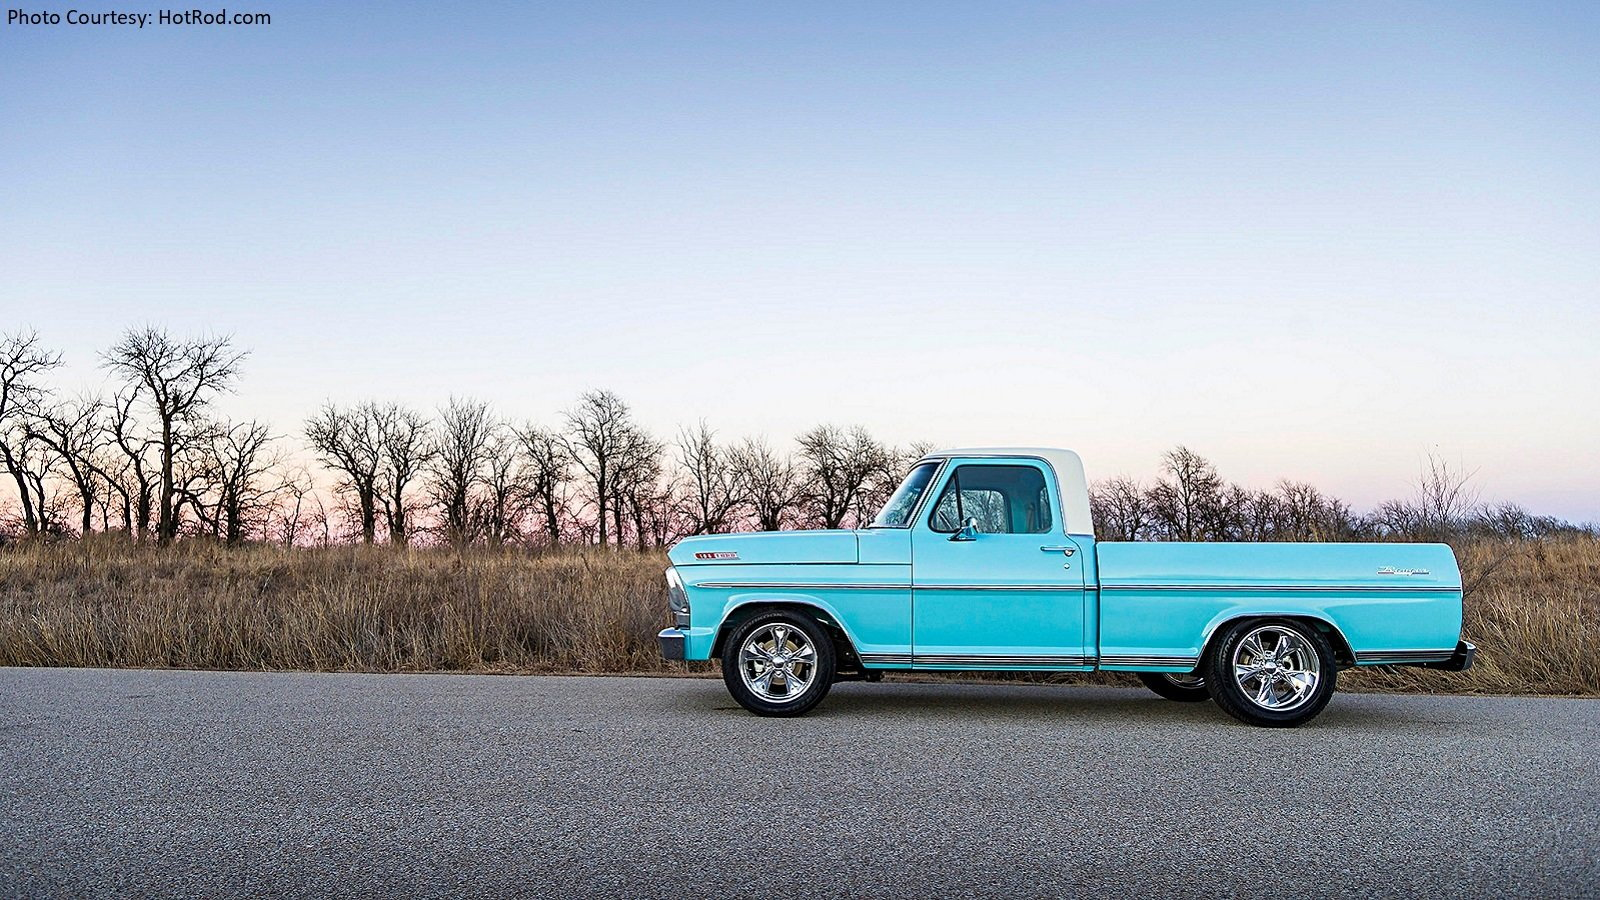 1967 Ford F-100 has a Familiar Story